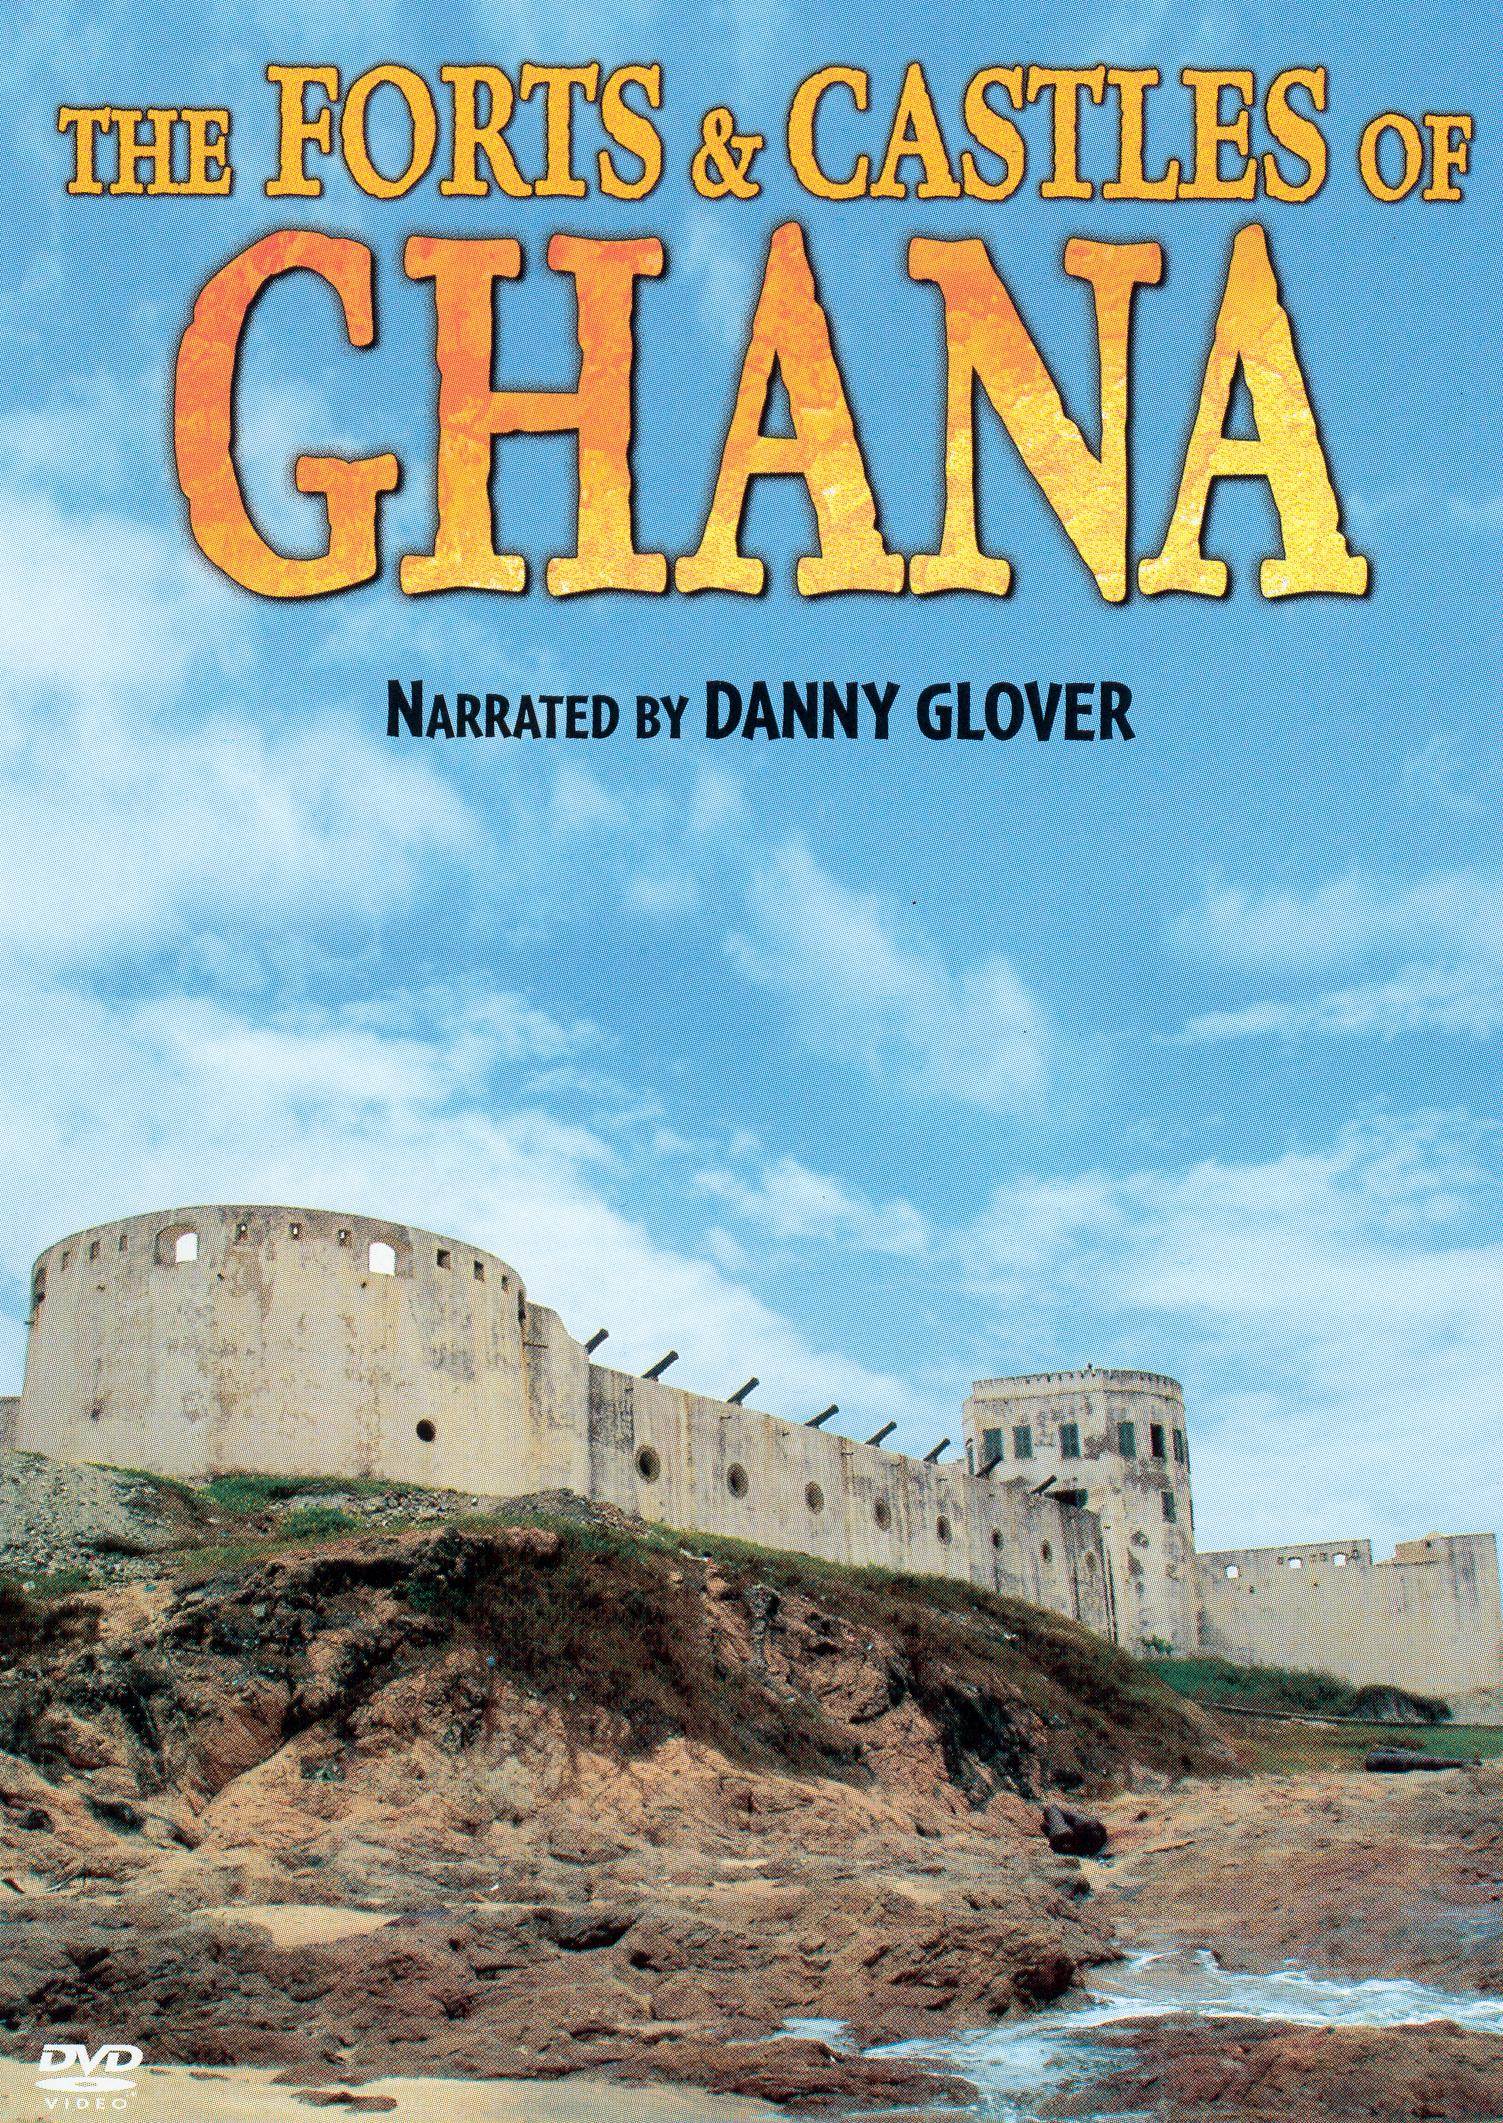 The Forts and Castles of Ghana